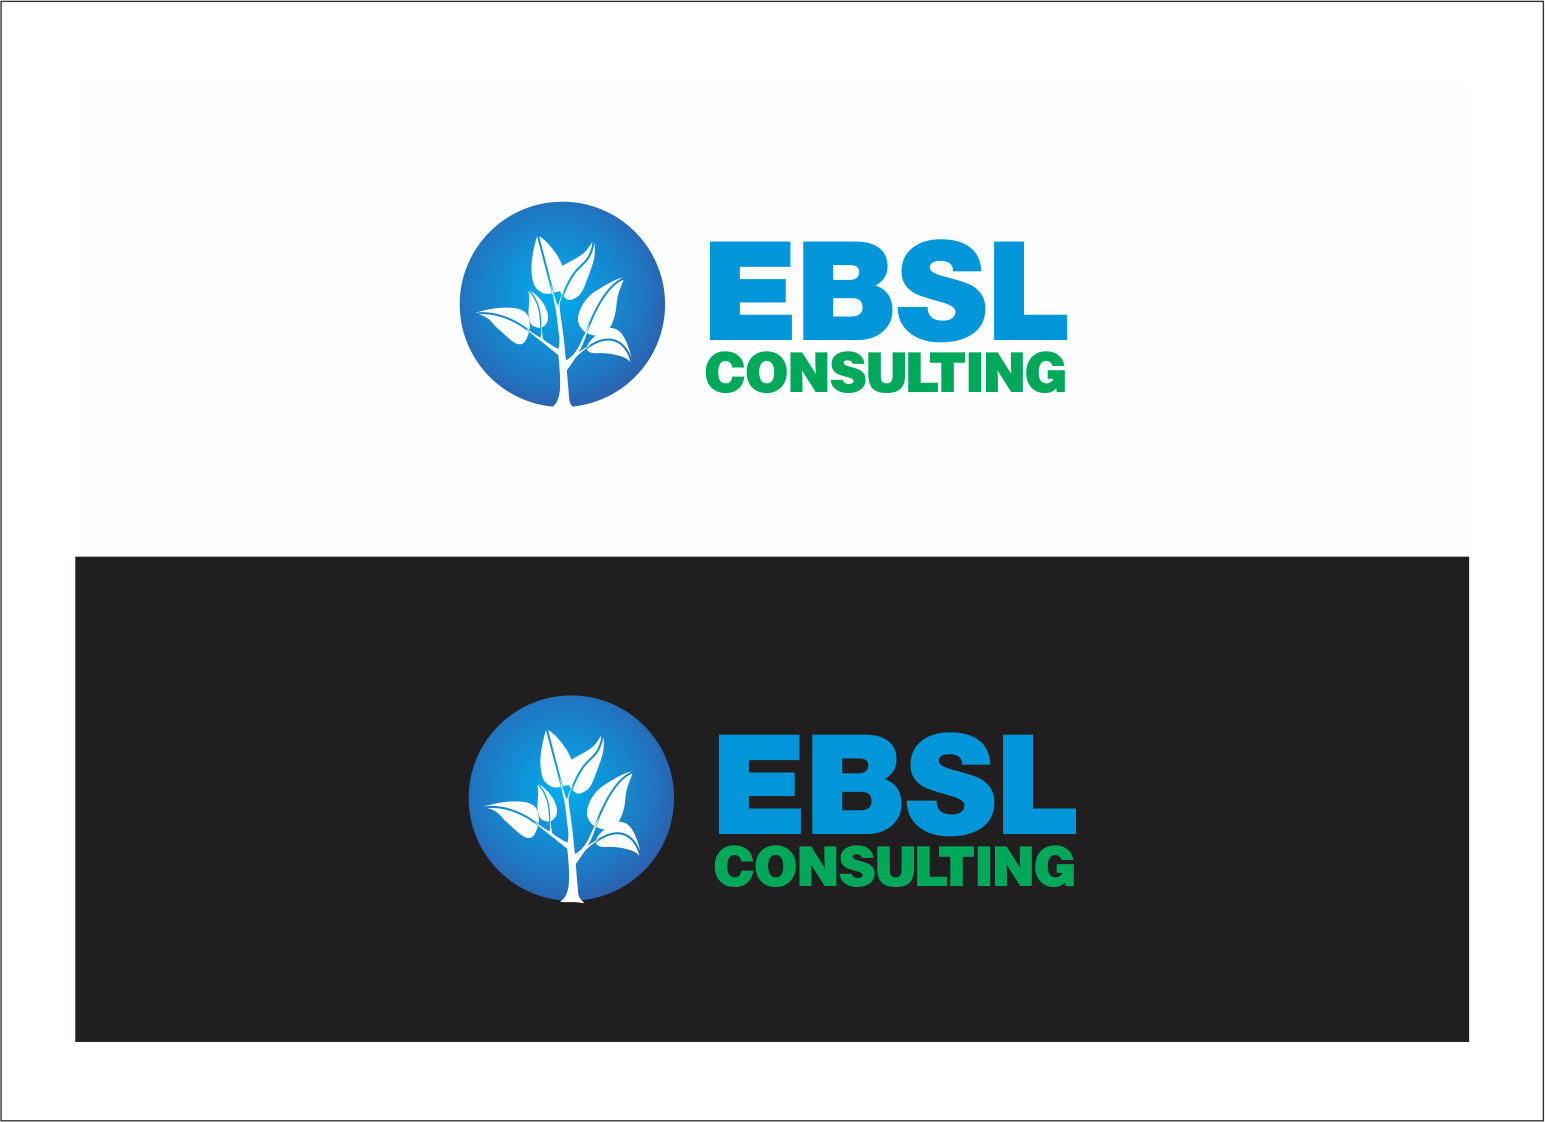 Logo Design by fathdesigner - Entry No. 124 in the Logo Design Contest EBSL Consulting Logo Design.